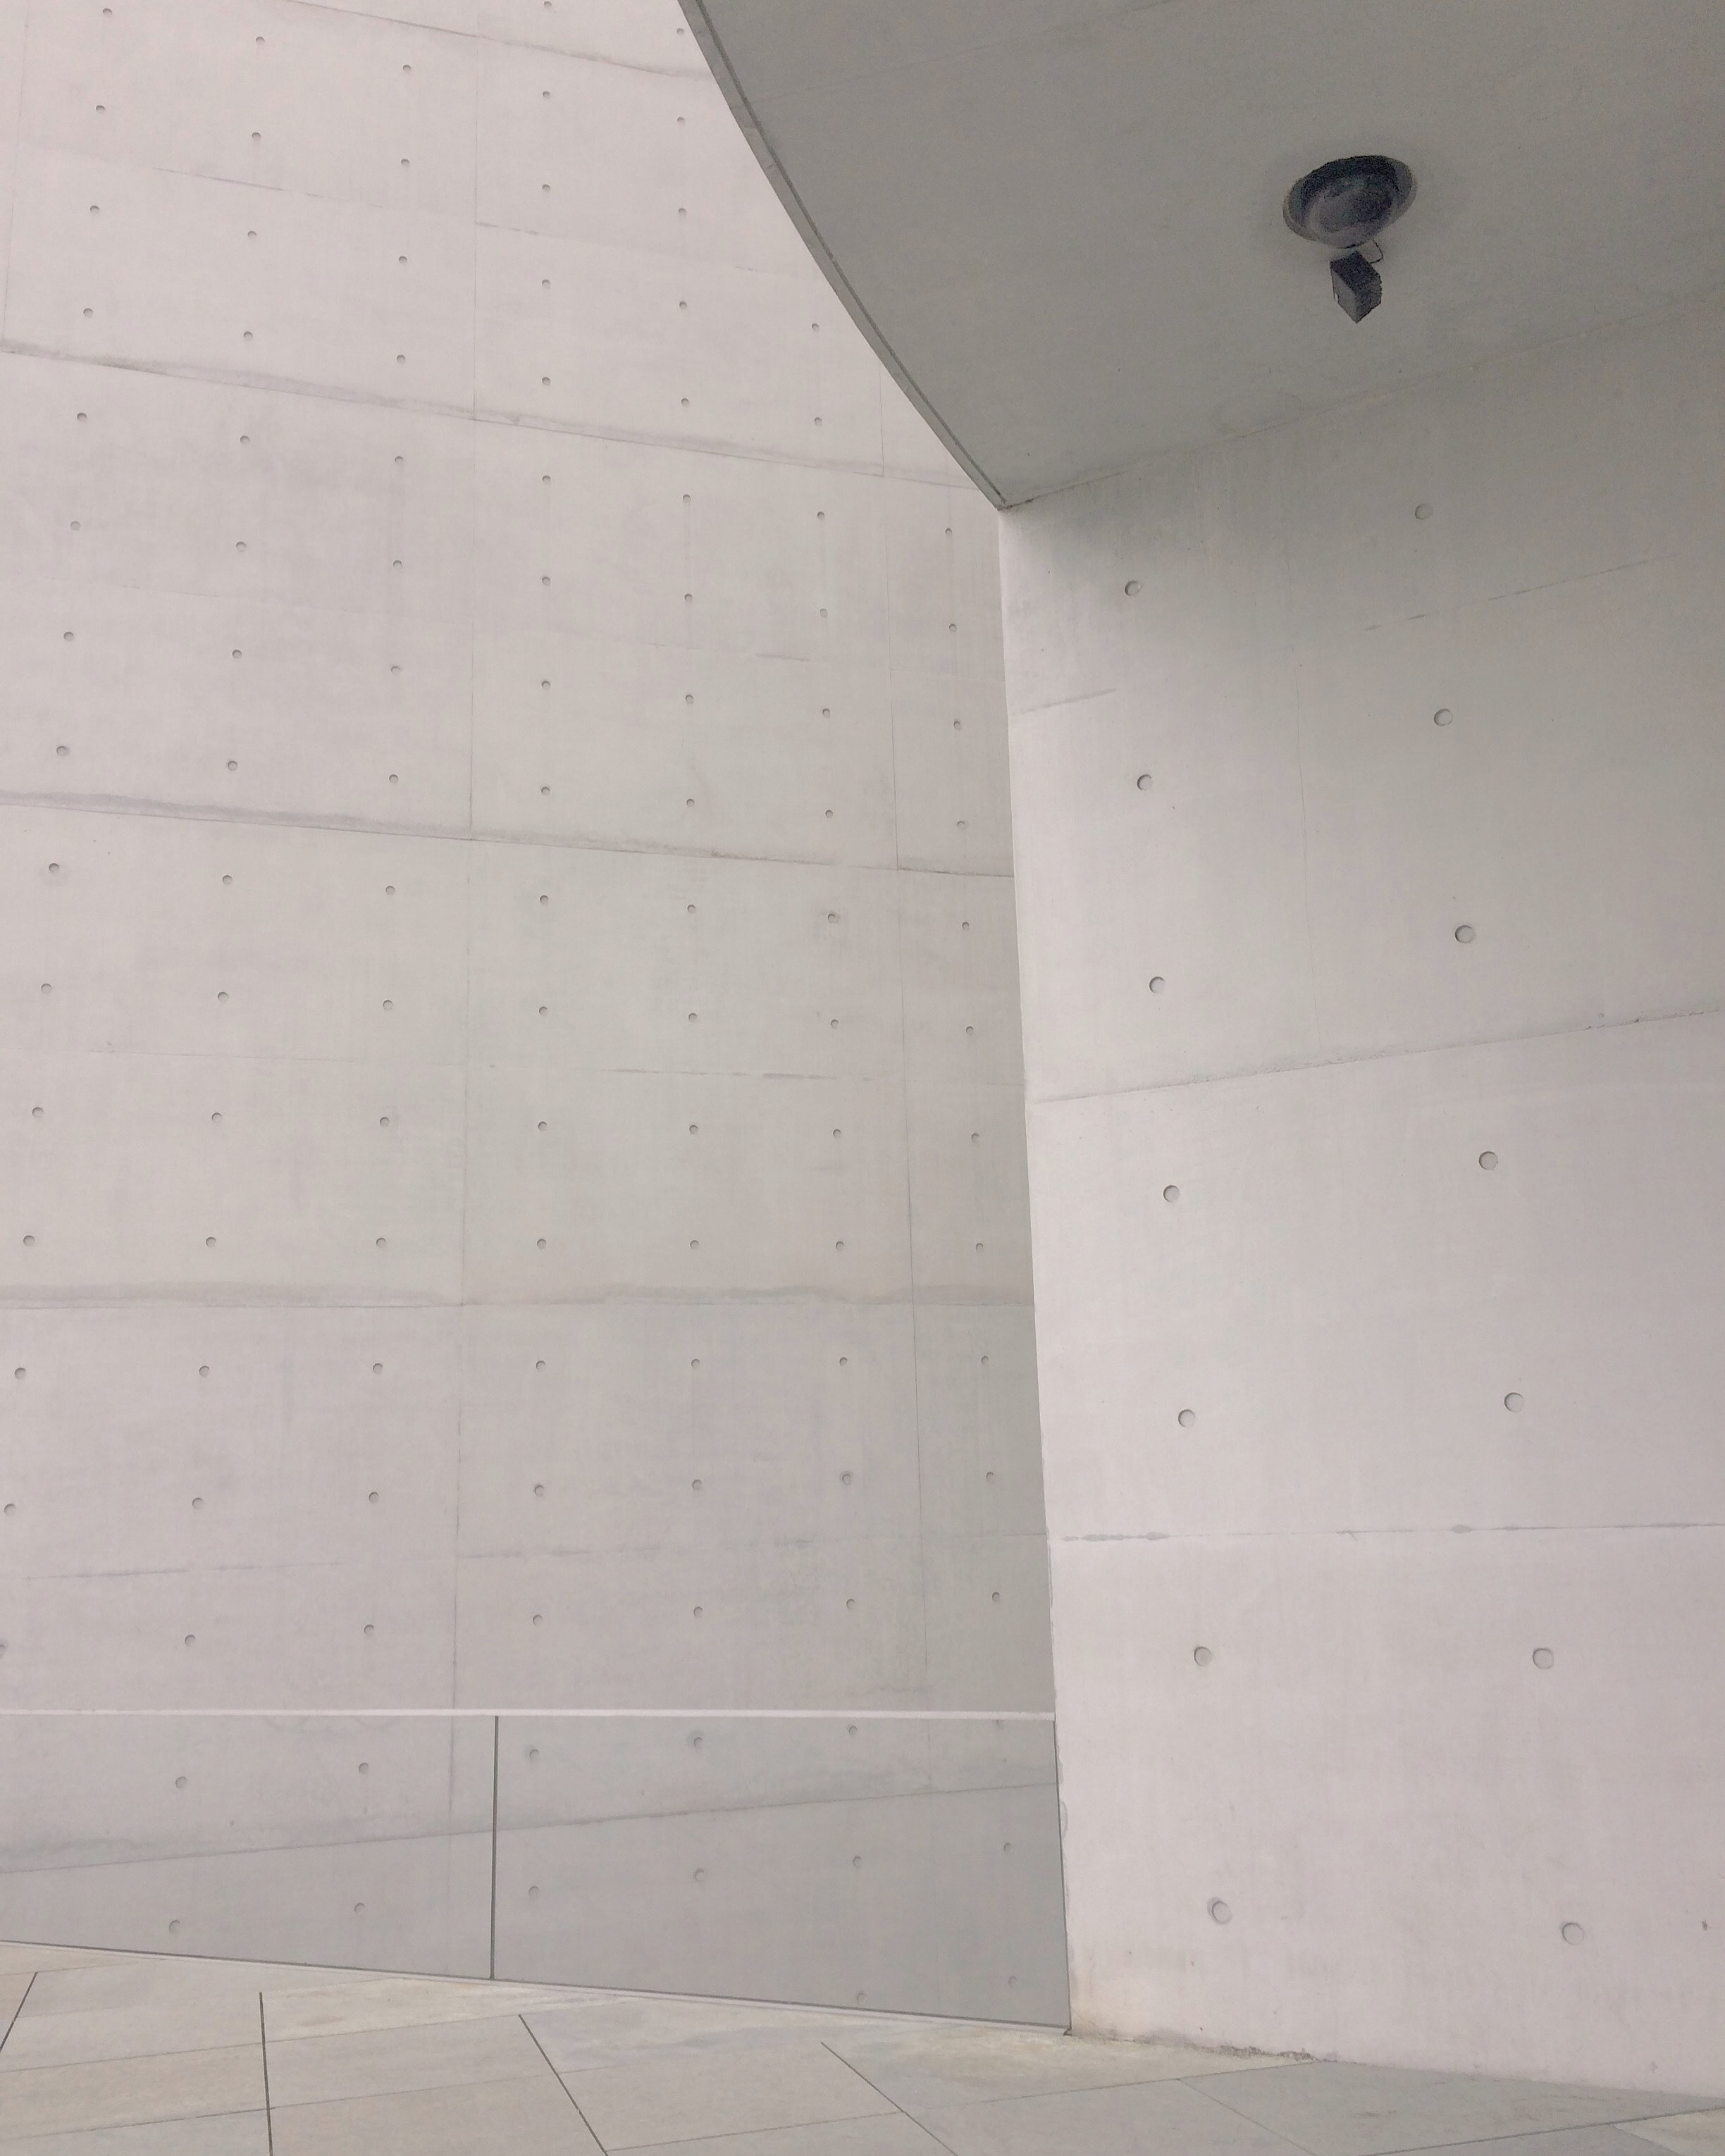 White Painted Wall, Building, Camera, Cctv, Concrete, HQ Photo